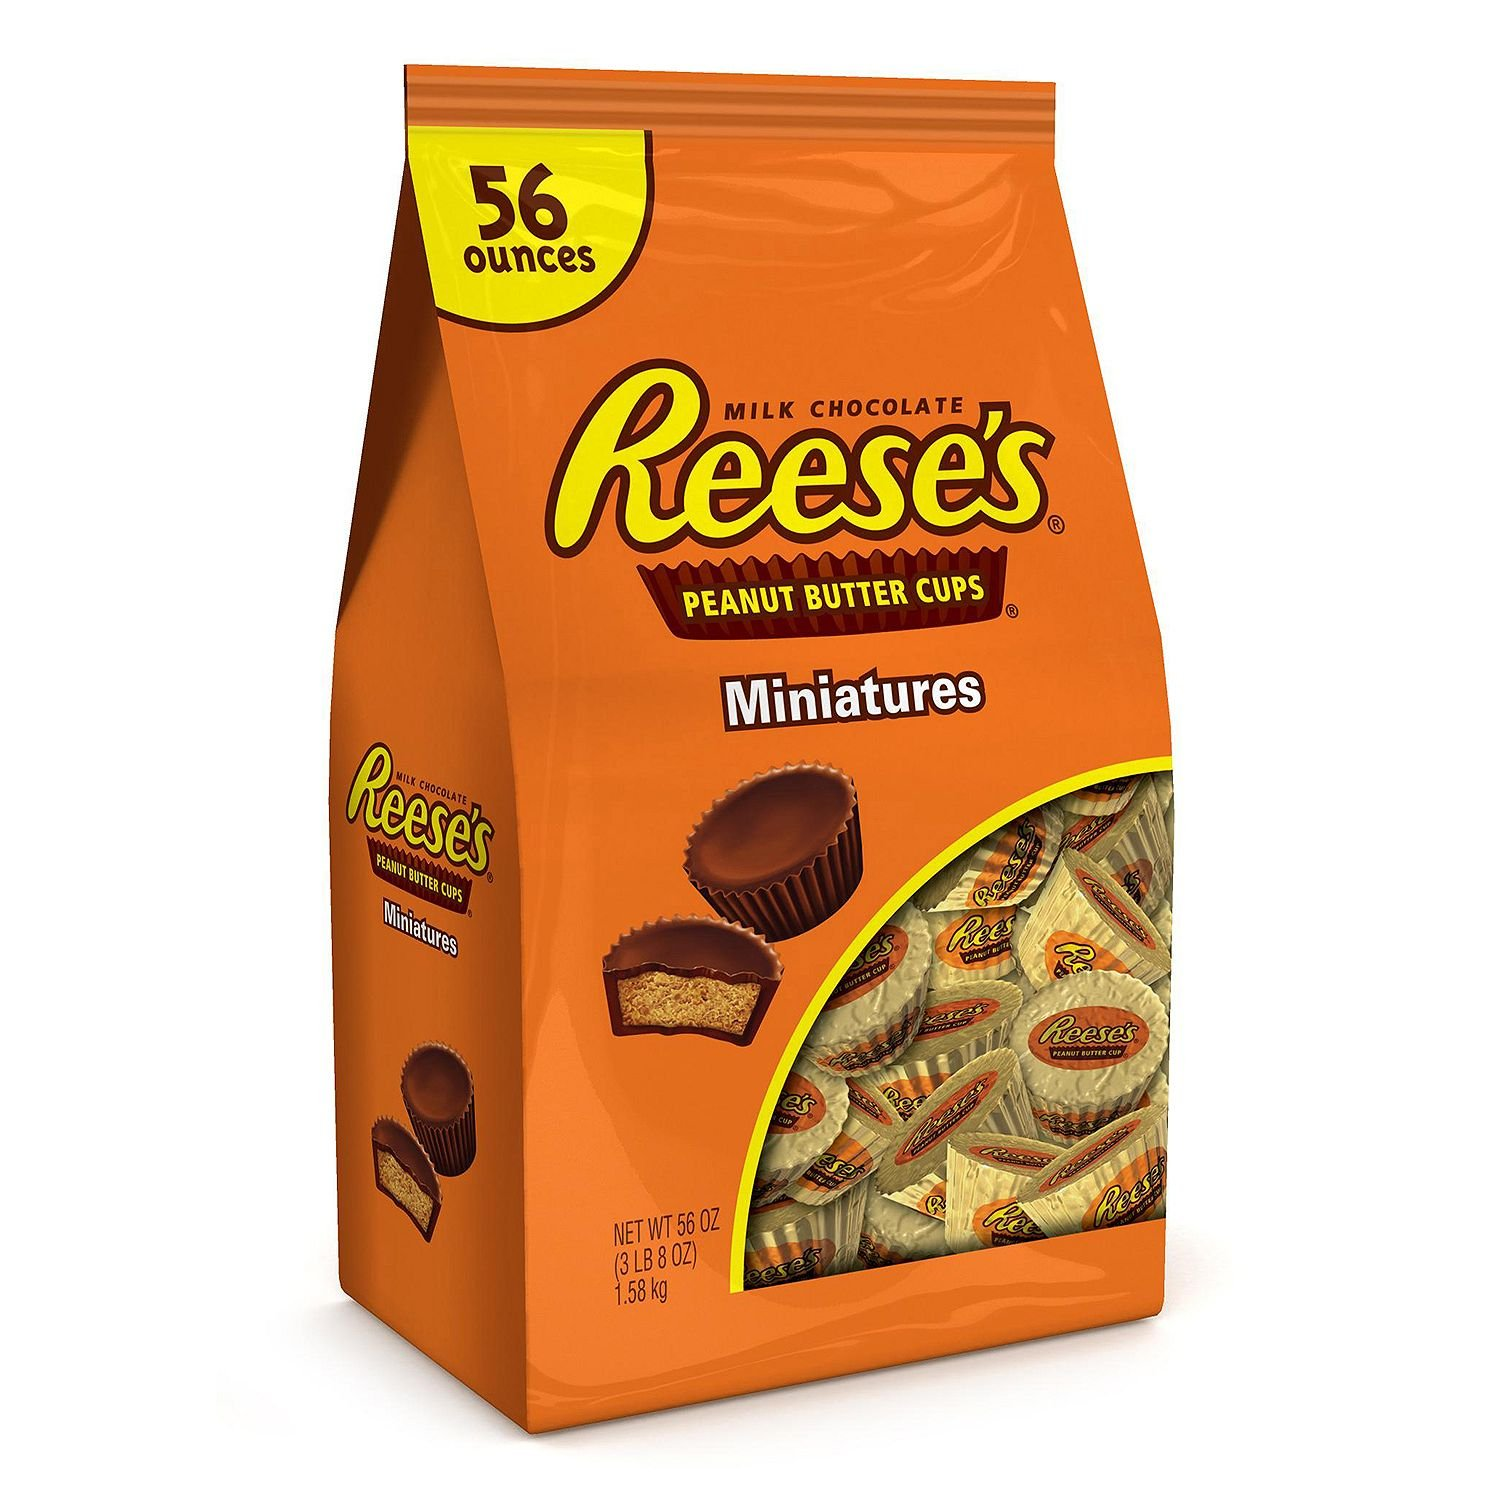 Reese's Peanut Butter Cup Miniatures (56 oz.) (pack of 6) by Reese's